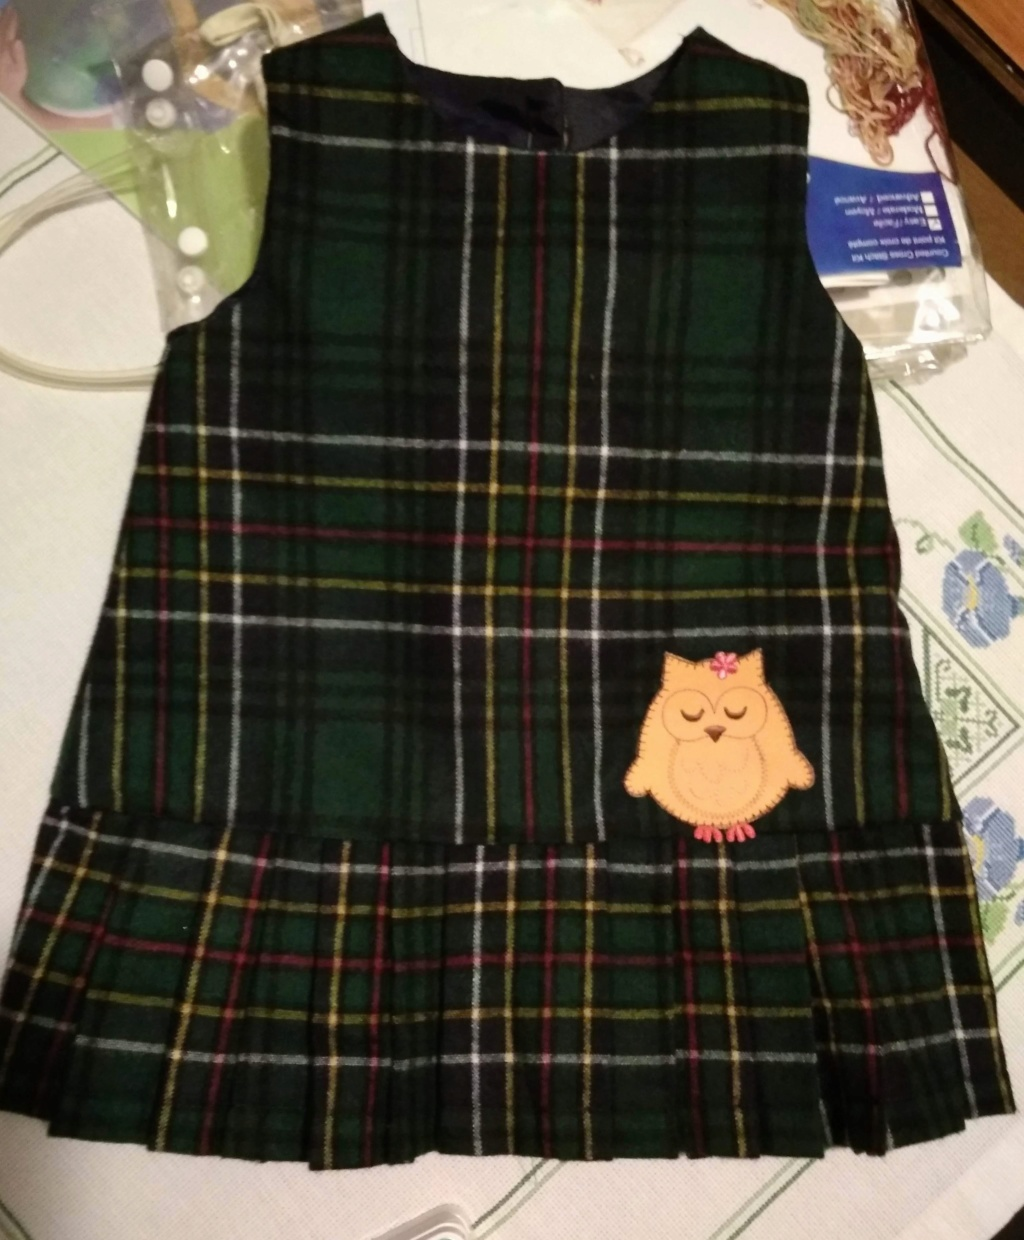 une petite robe chasuble en 2 ans Img_2022